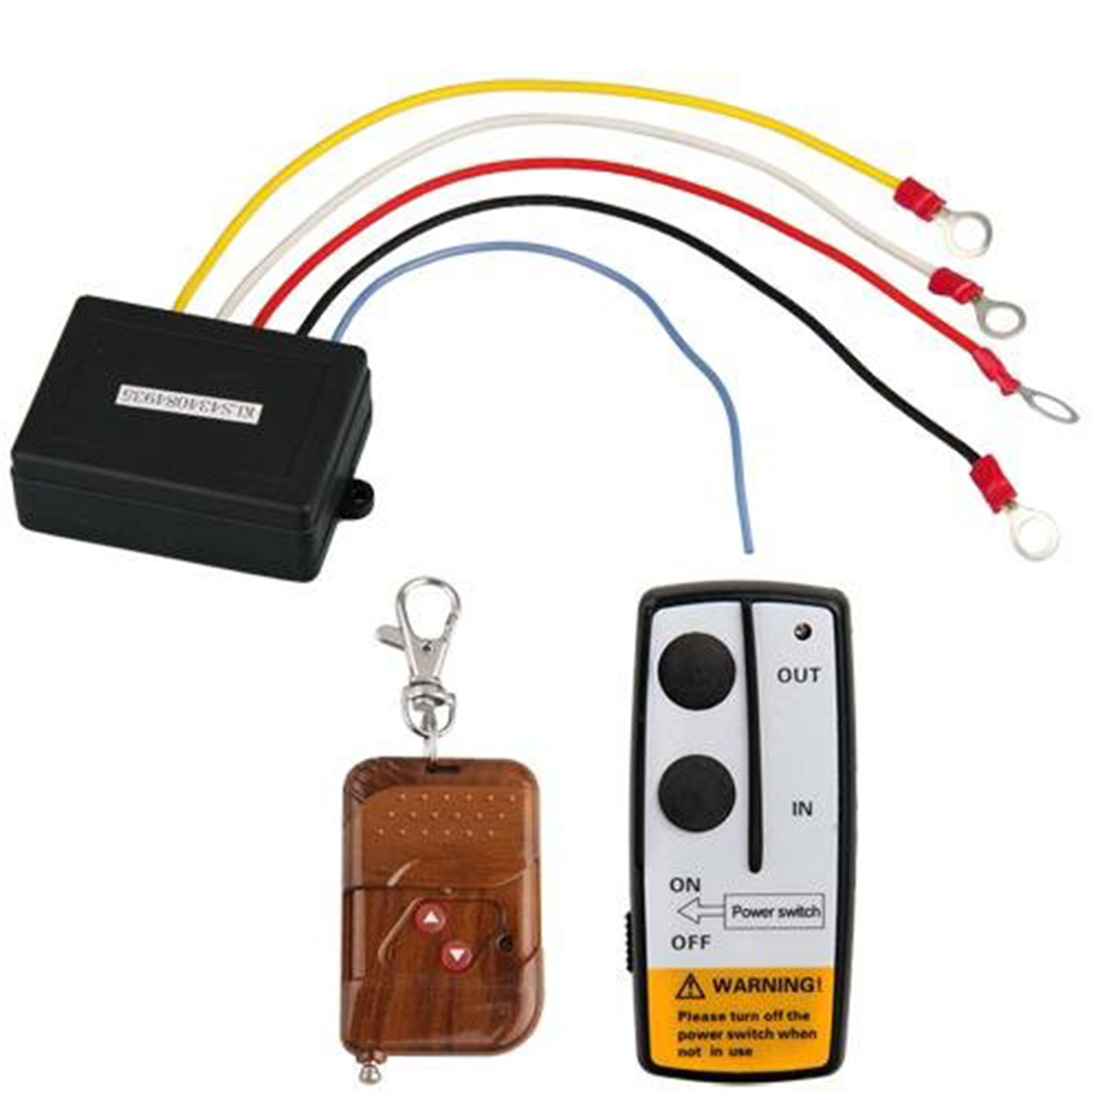 traveller wireless remote control wiring diagram traveller online buy whole remote winch waterproof from remote on traveller wireless remote control wiring diagram